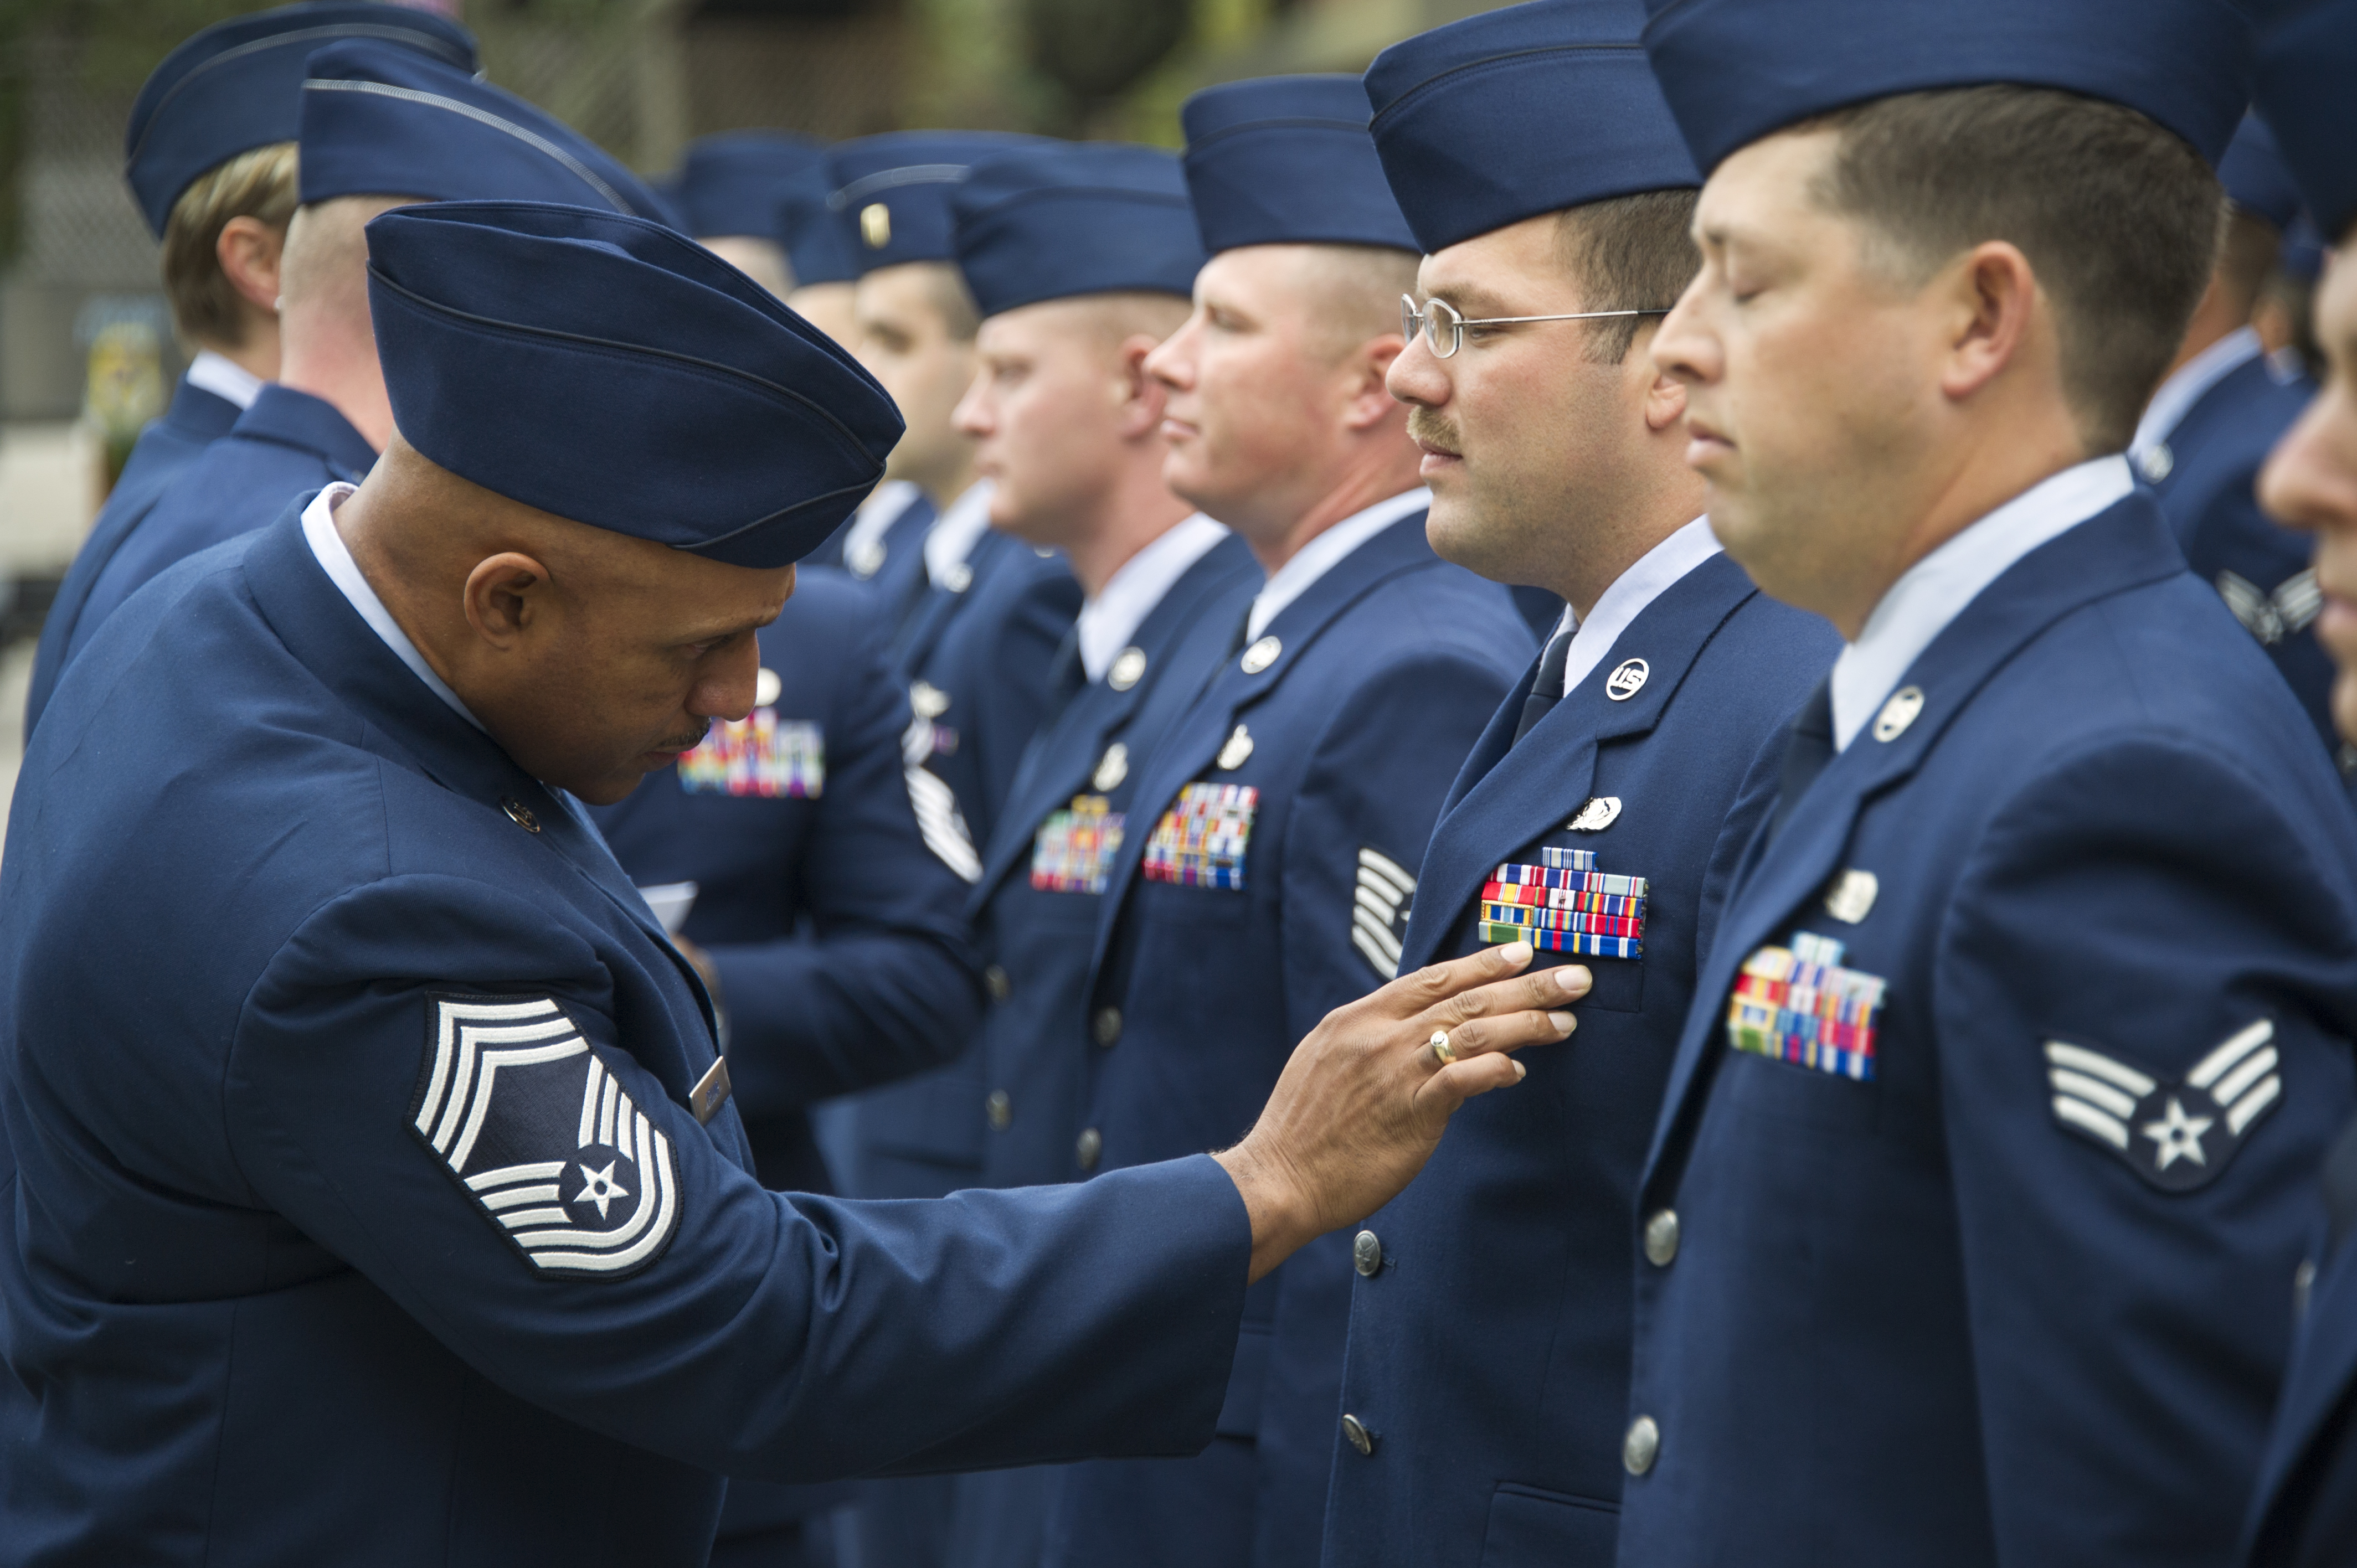 85th Eis Conducts Open Ranks Inspections Gt 24th Air Force